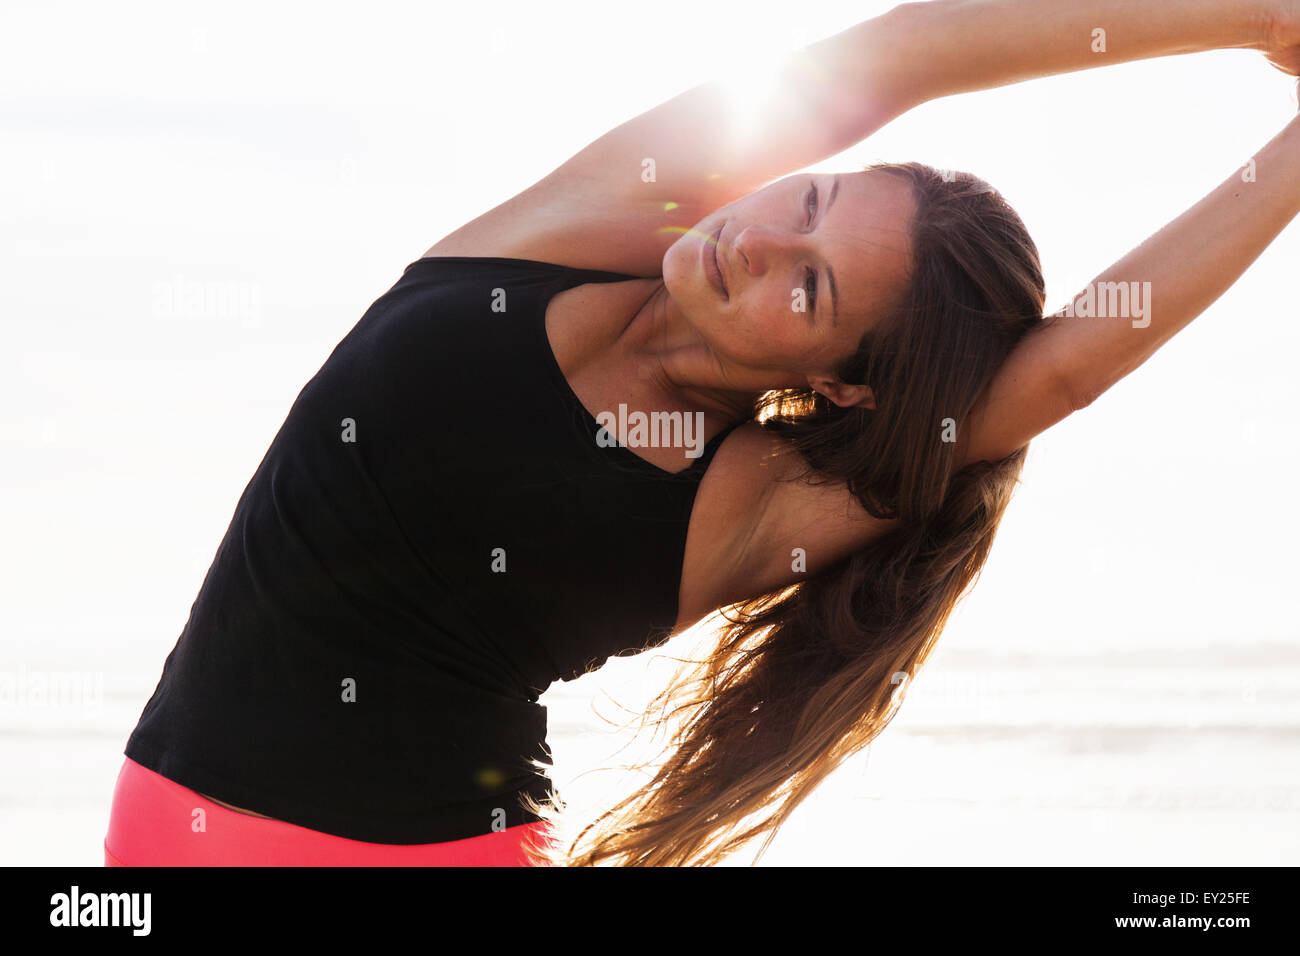 Woman stretching - Stock Image